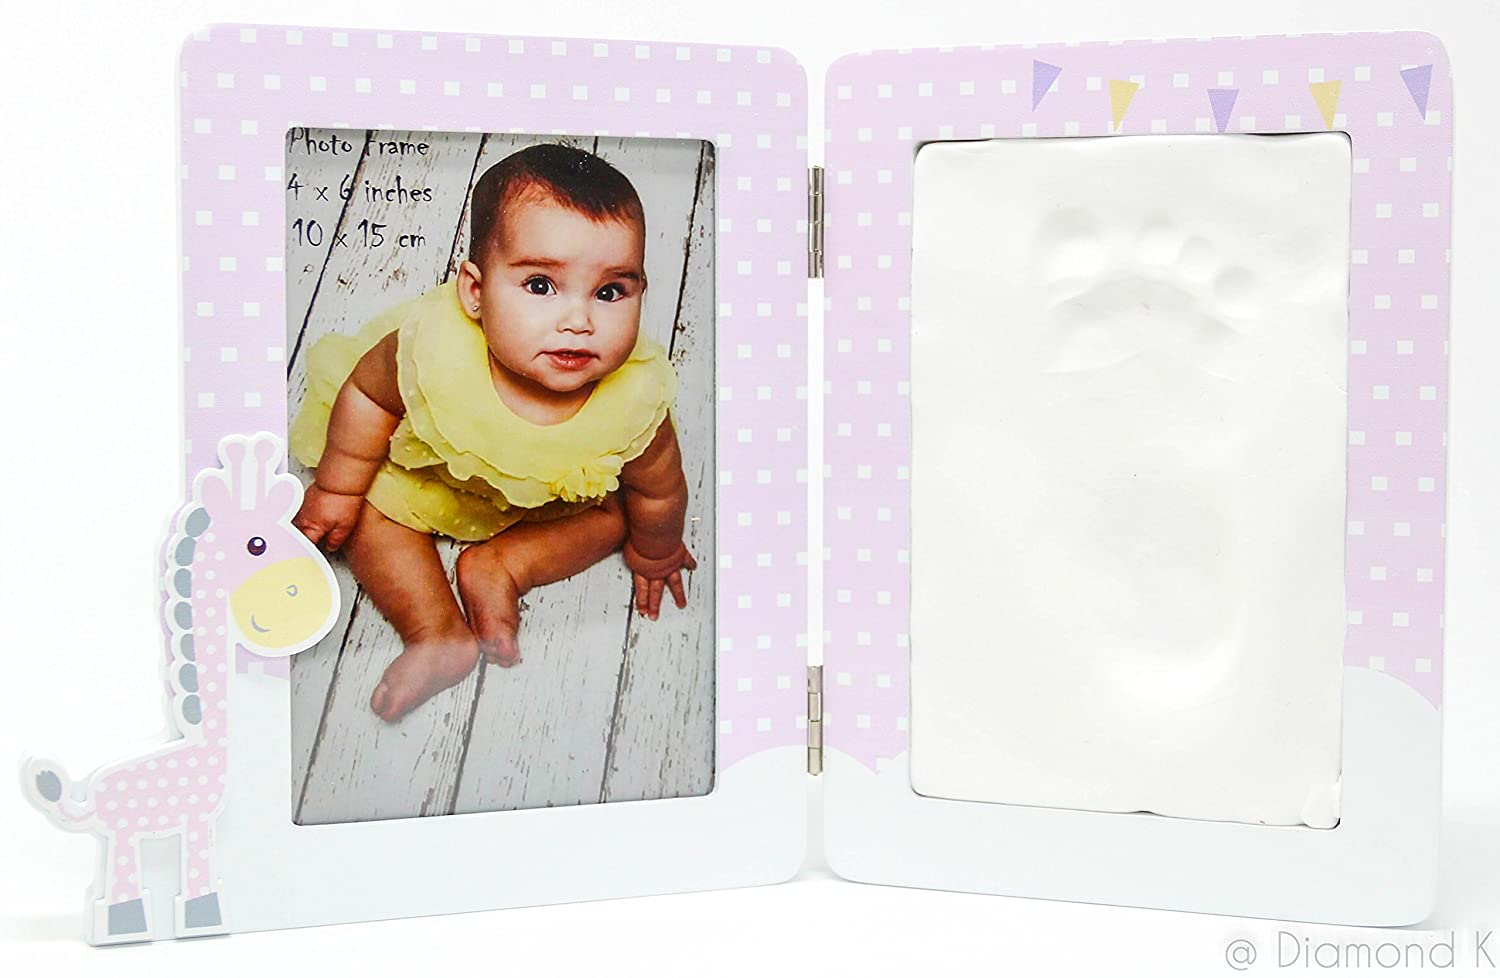 Baby Handprint & Footprint Clay Kit - Picture Frame DIY with Premium Wooden Frame & Non-Toxic Unique Baby Shower Gift for New Moms or Baby Registry - A Memorable Keepsake | by Baby FLÖ One Diamond K